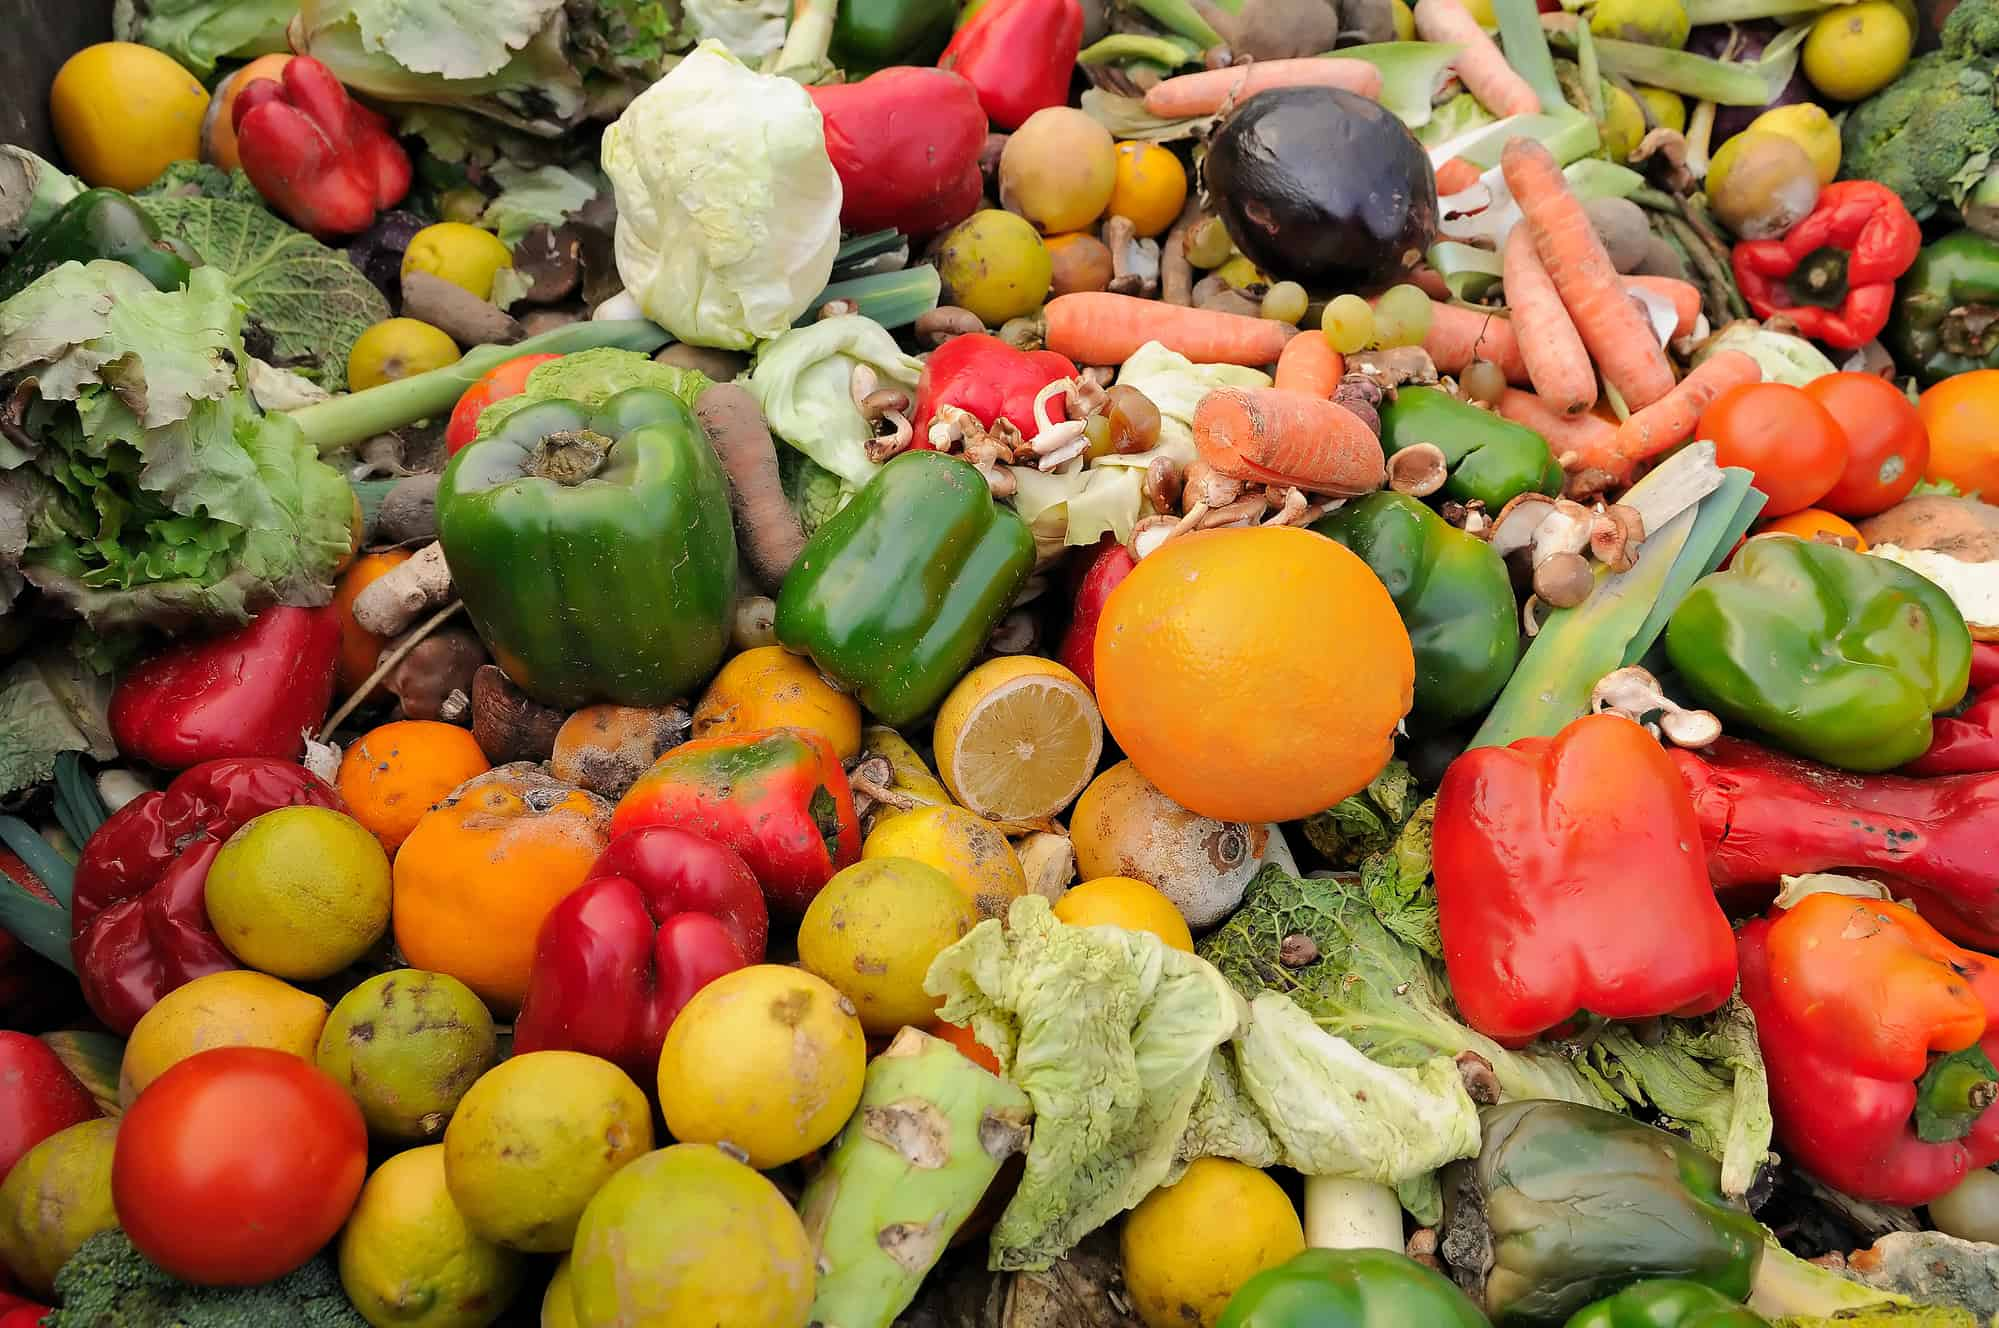 3.6m tonnes of food is wasted before reaching UK supermarkets